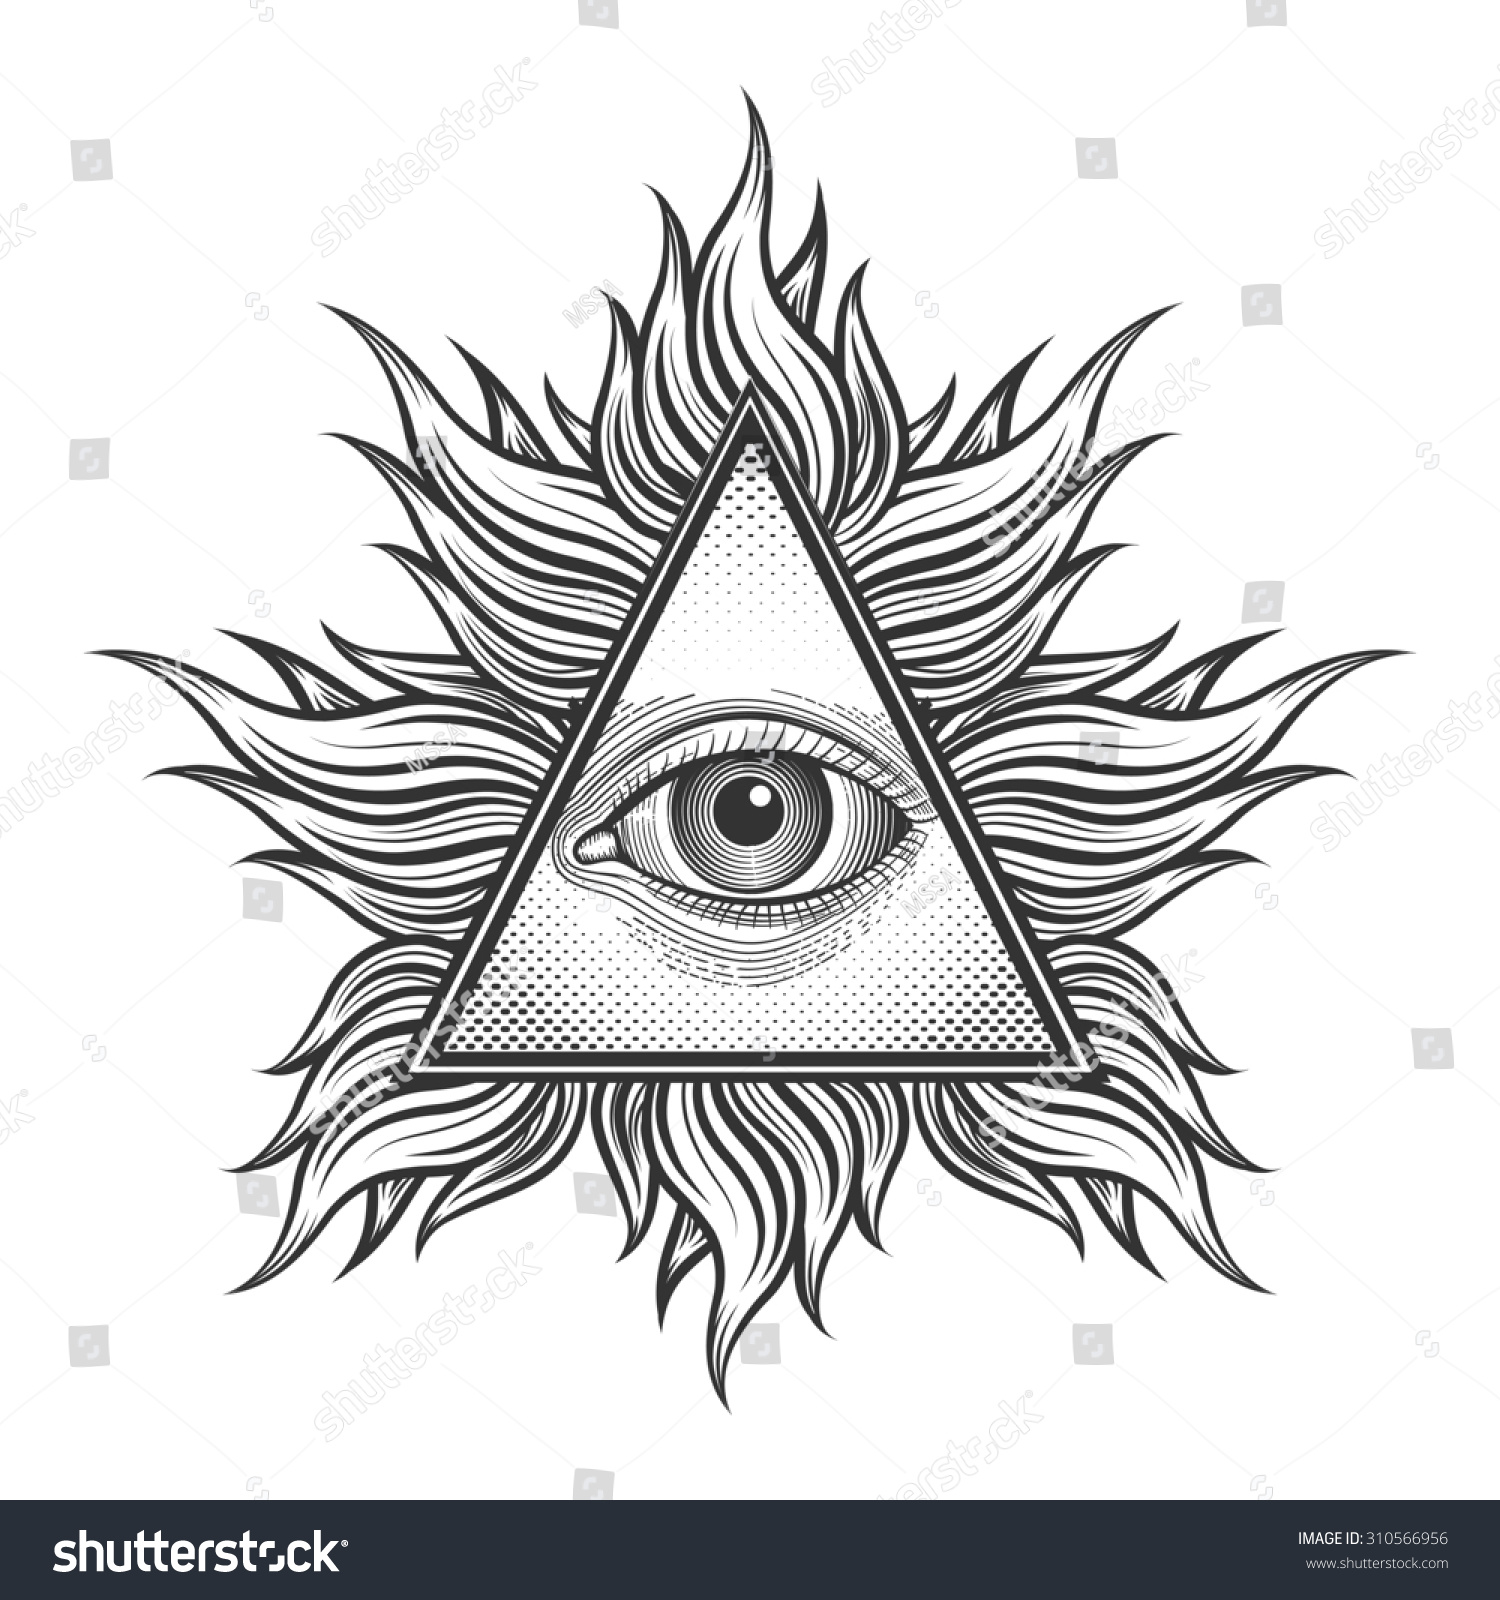 All Seeing Eye Pyramid Symbol Engraving Stock Illustration 310566956